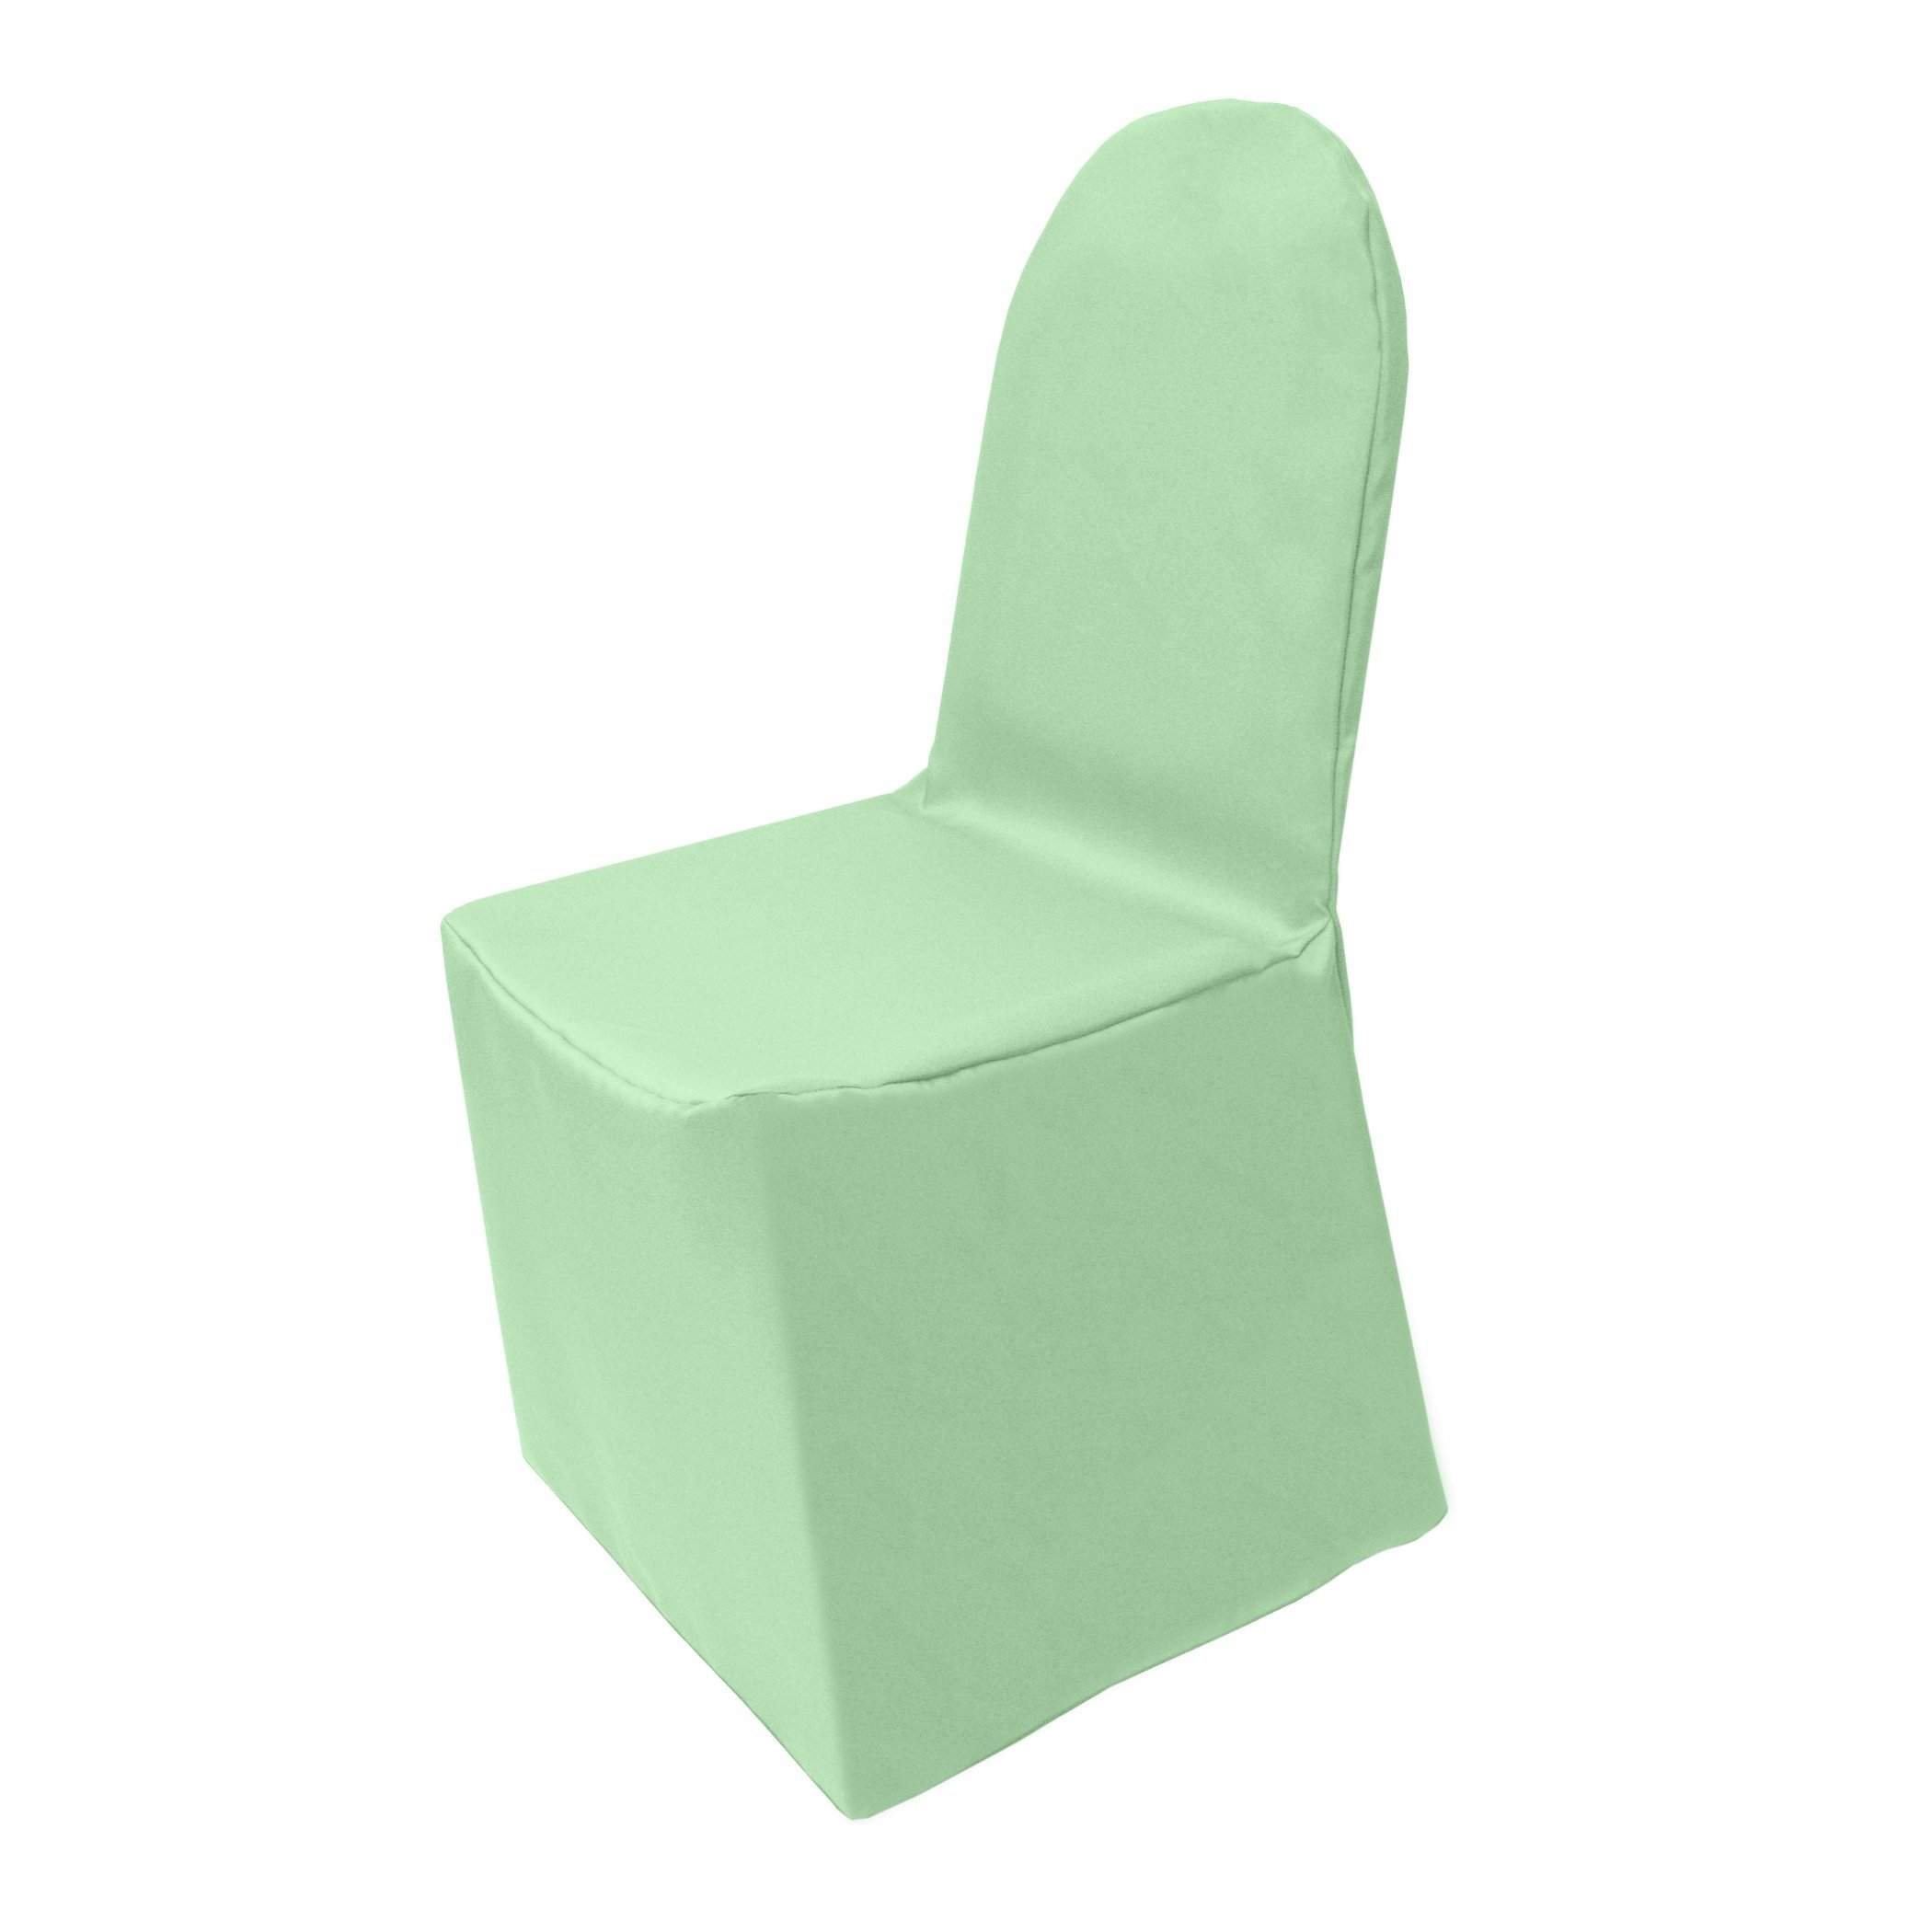 Ultimate Textile (2 Pack) Polyester Universal Chair Cover - for Wedding or Party use, Mint Light Green